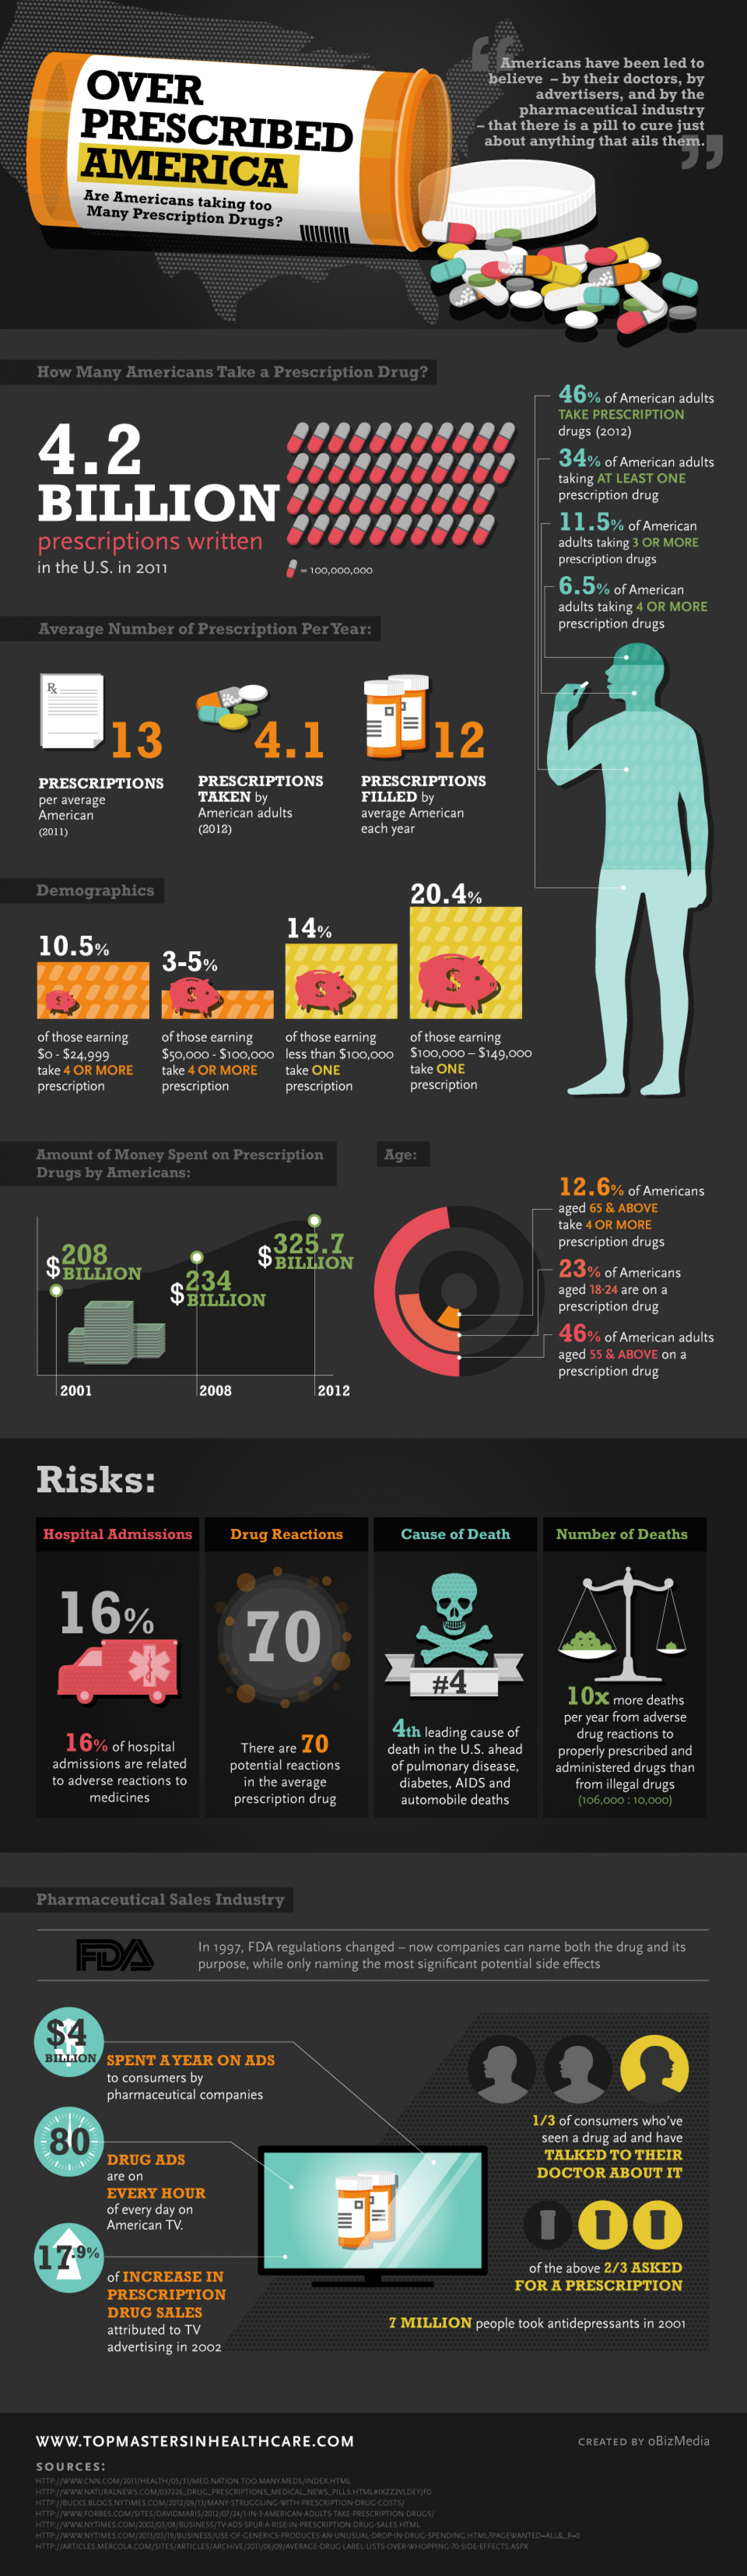 Over Prescribed America: Are Americans Taking Too Many Prescription Drugs Infographic